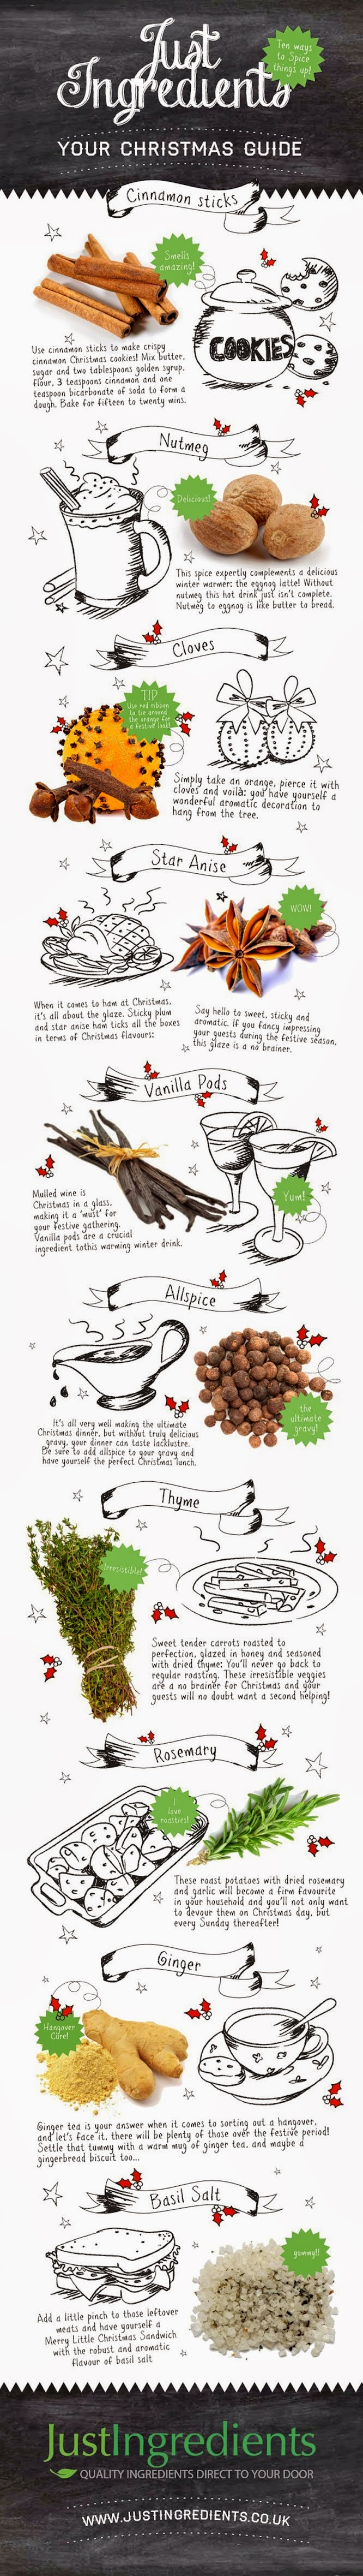 http://www.justingredients.co.uk/blog/10-ways-to-spice-up-christmas-infographic